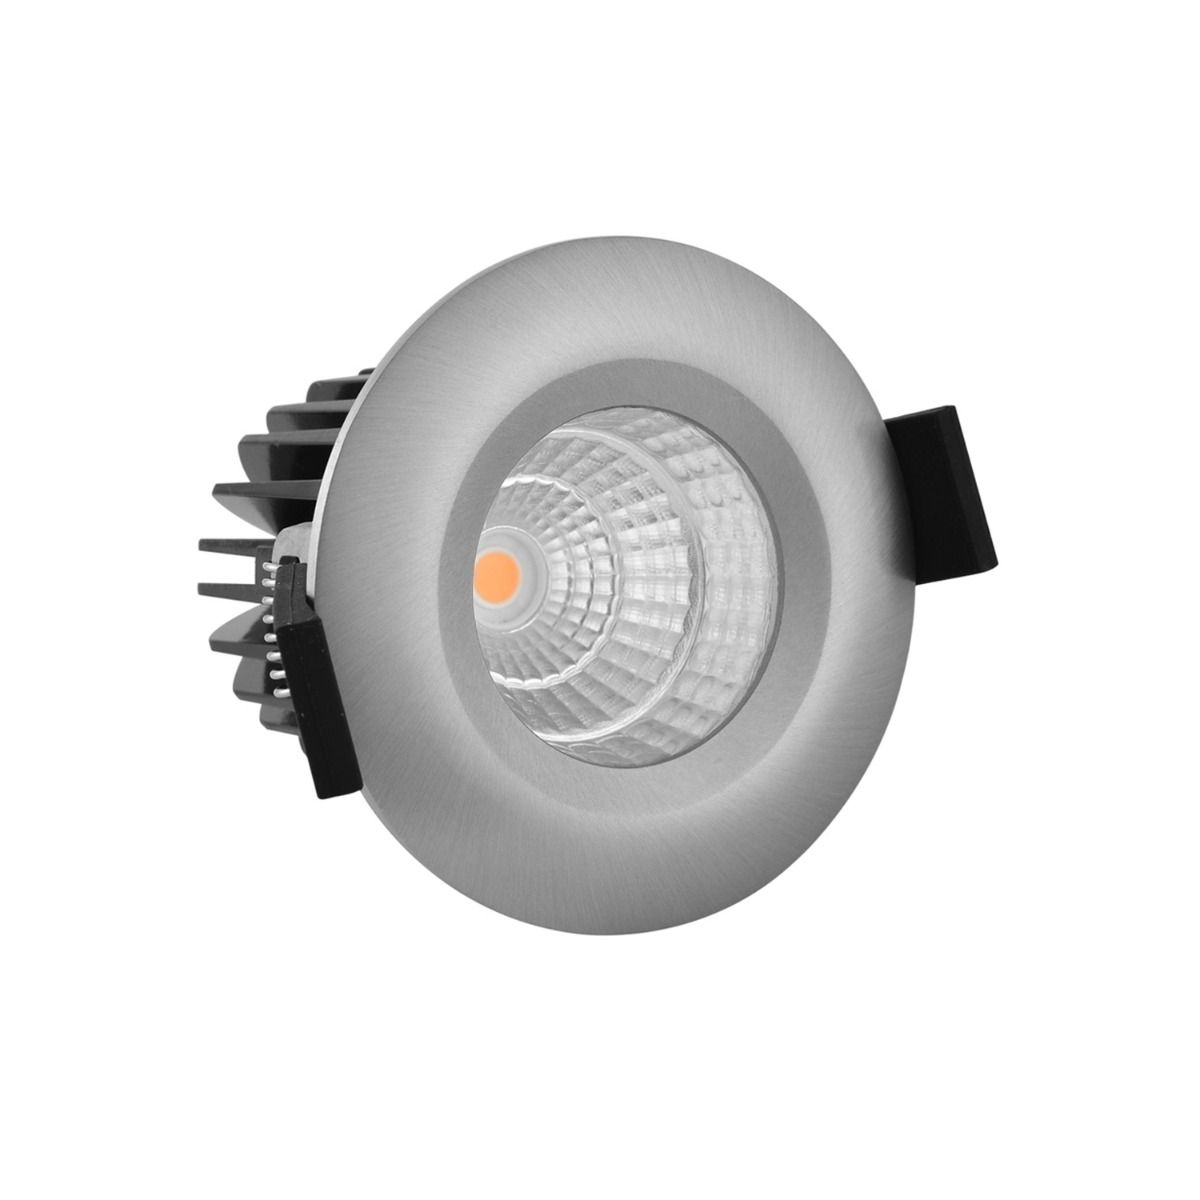 Noxion LED Spot Forseti IP44 2700K Aluminium 6W | Best Colour Rendering - Dimmable